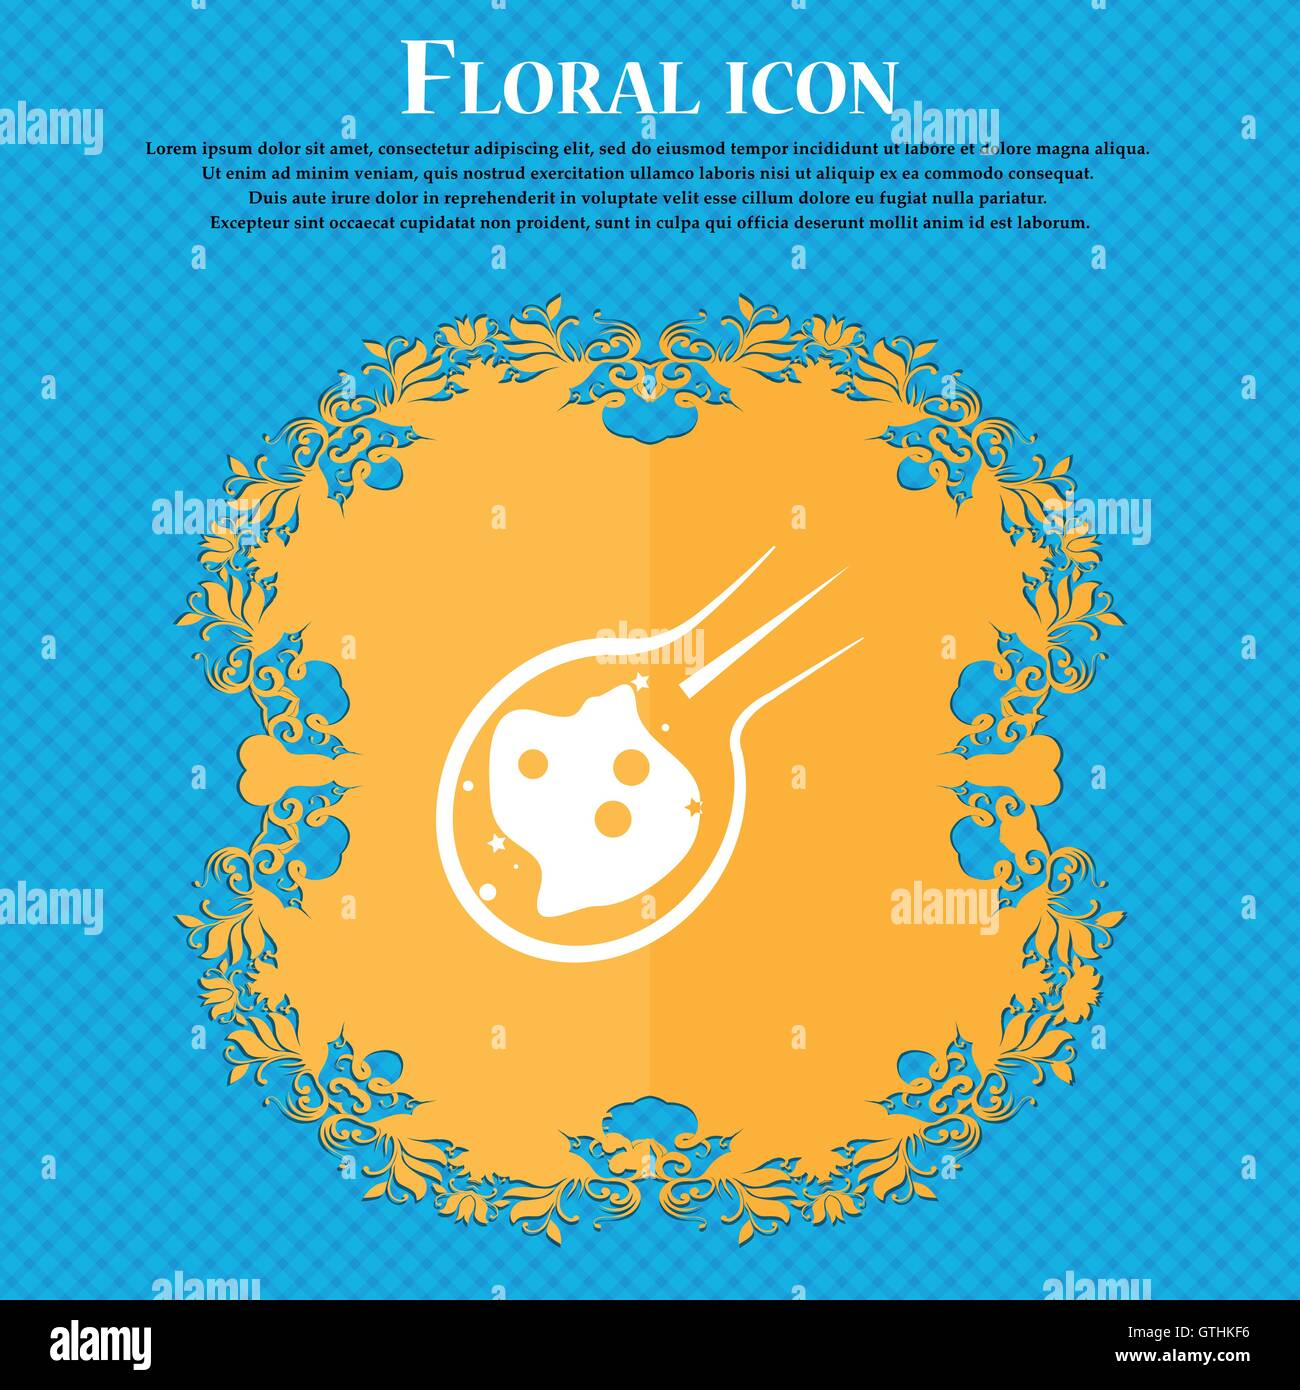 Flame meteorite icon icon. Floral flat design on a blue abstract background with place for your text. Vector - Stock Image